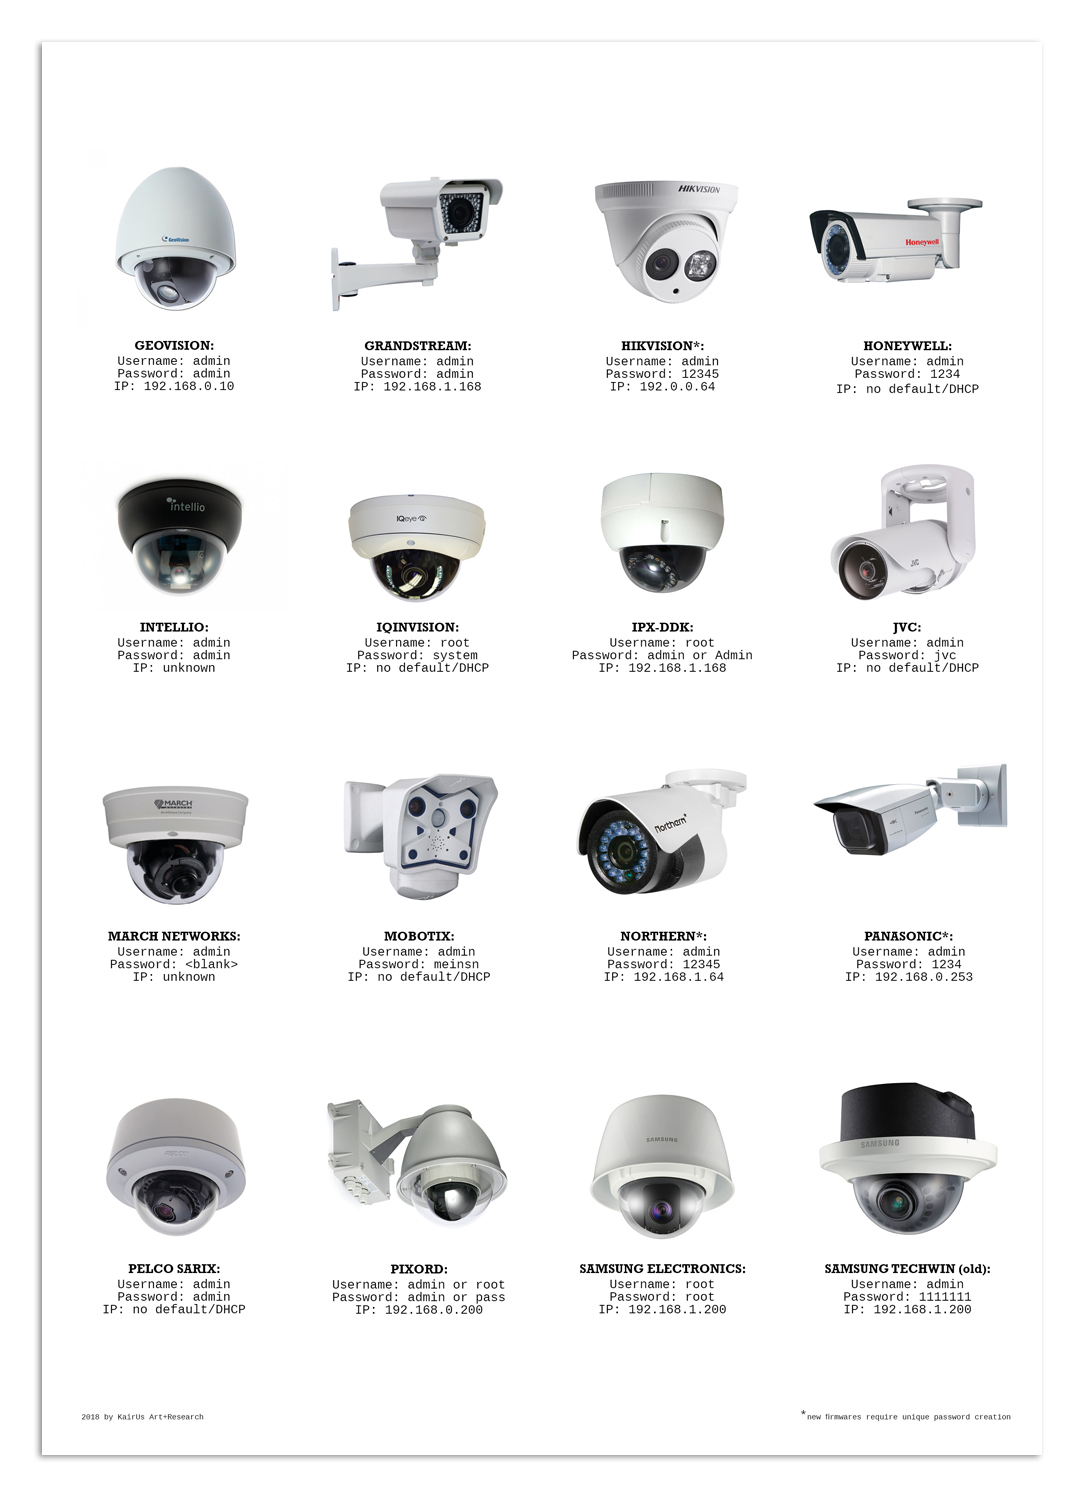 Admin Or insecuredesign: ip cameras with default login